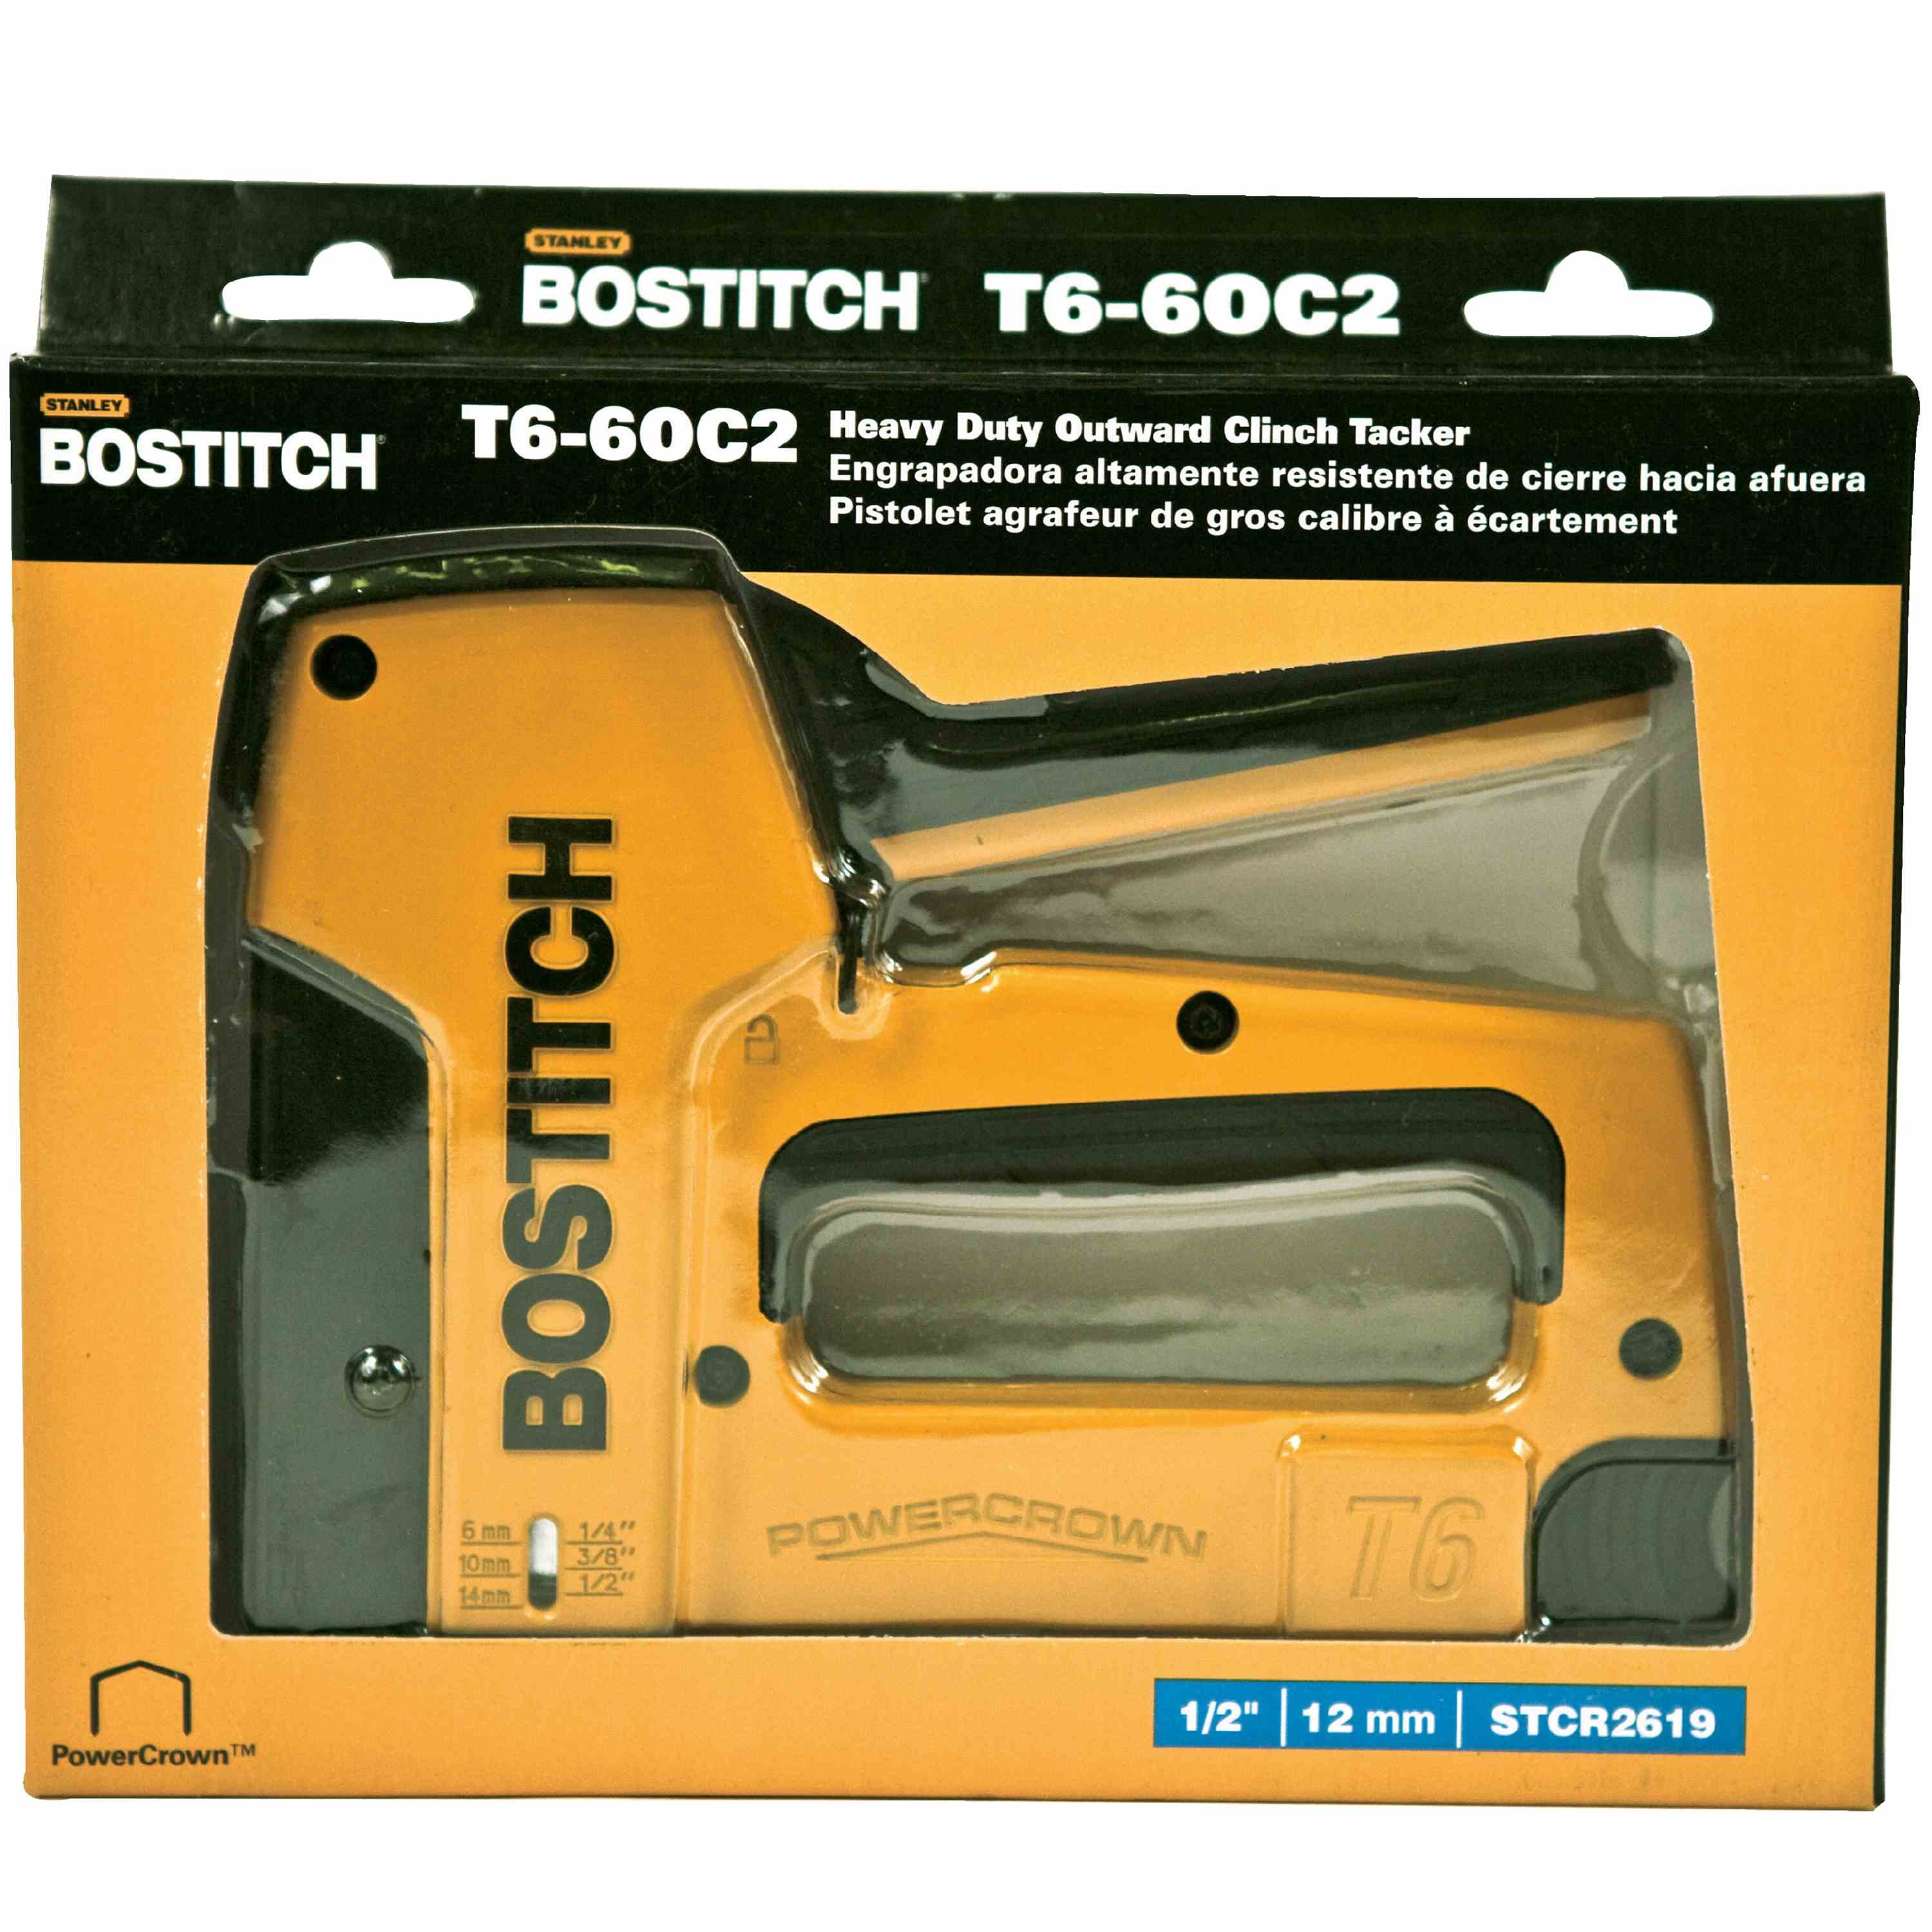 Bostitch - Heavy Duty PowerCrown Tacker - T6-6OC2